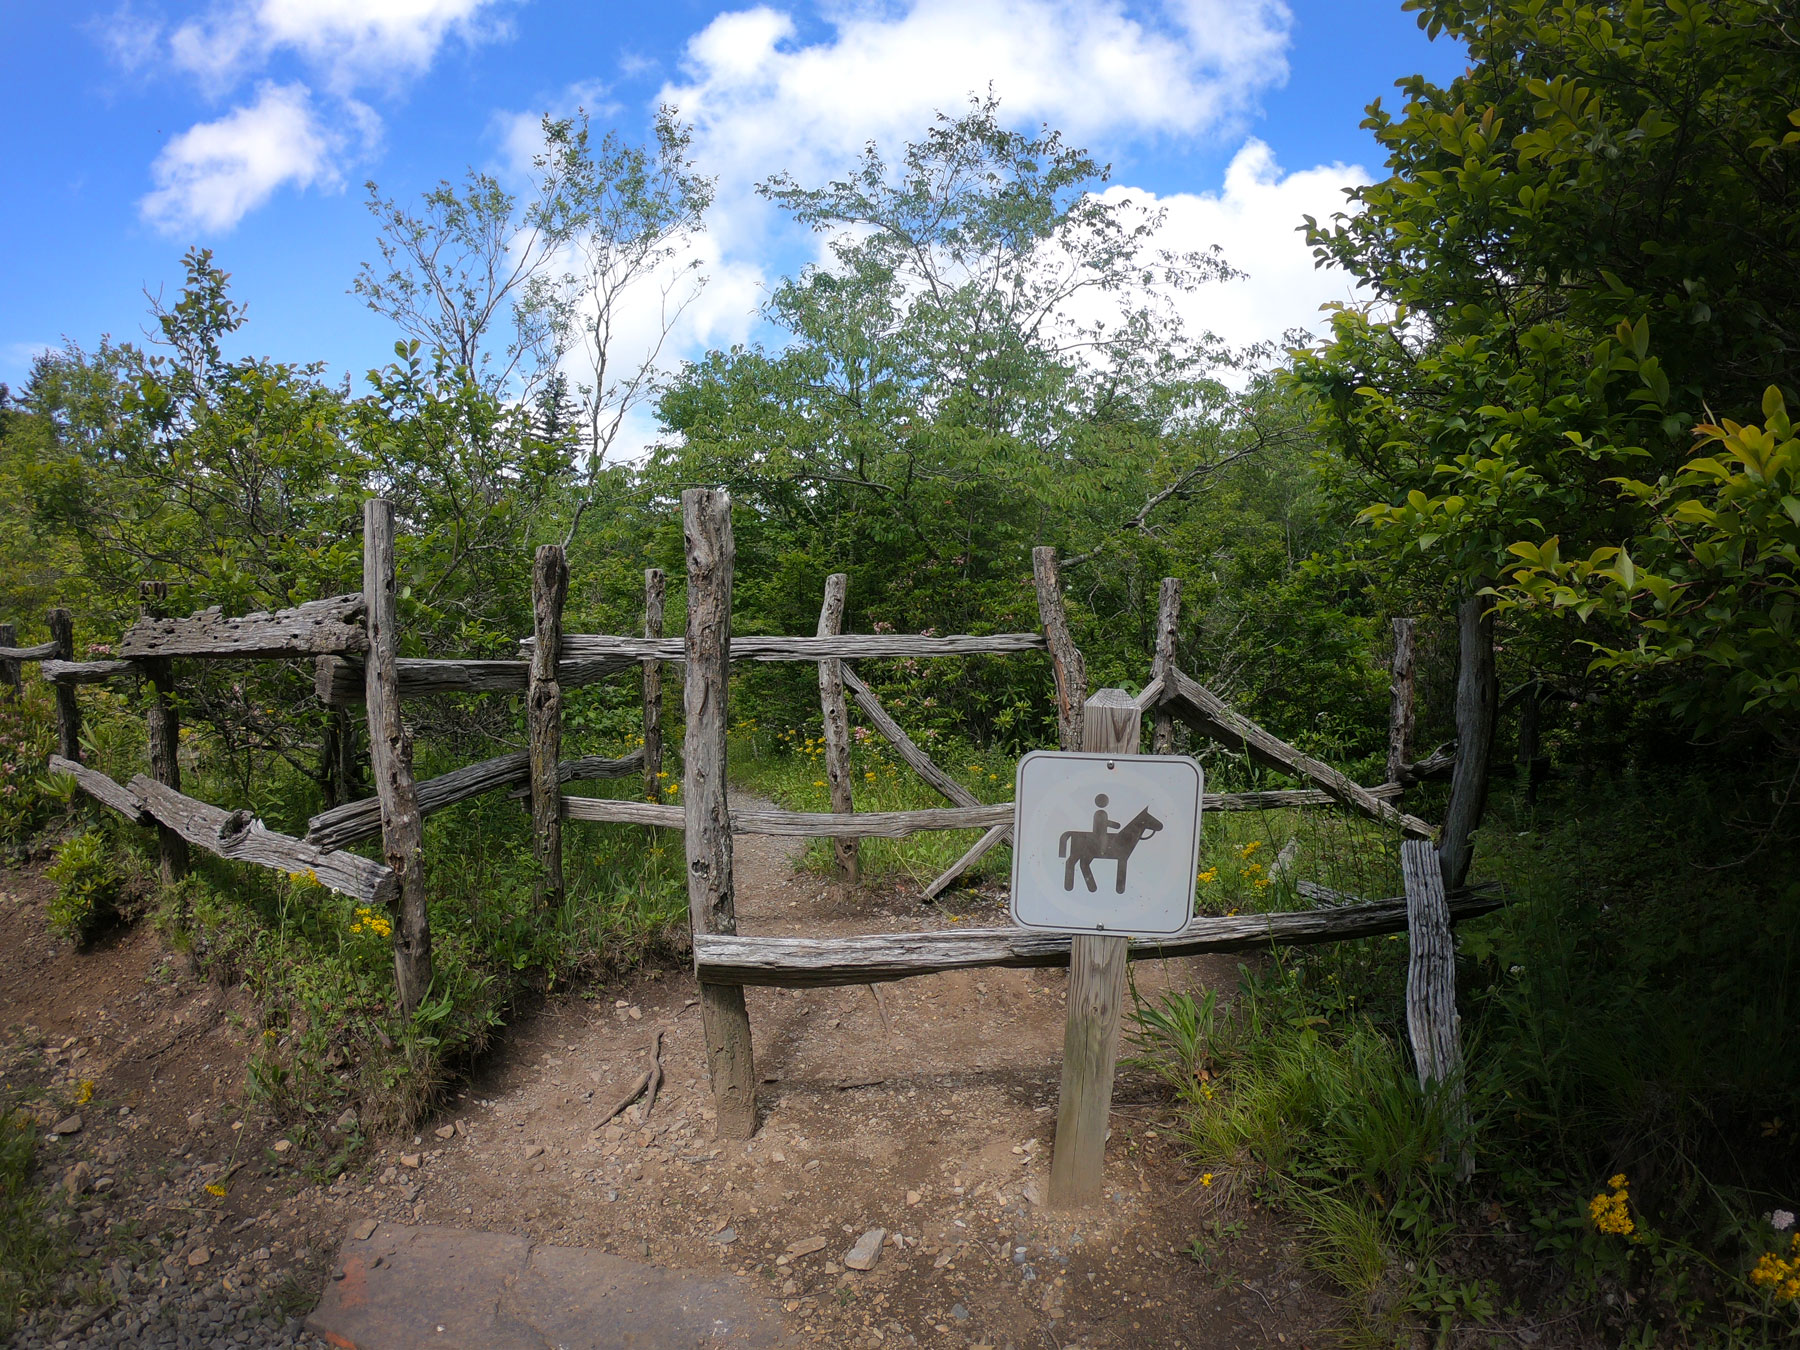 Wooden fence at the entrance to Cabin Creek Trail while camping at Grayson Highlands State Park, Virginia